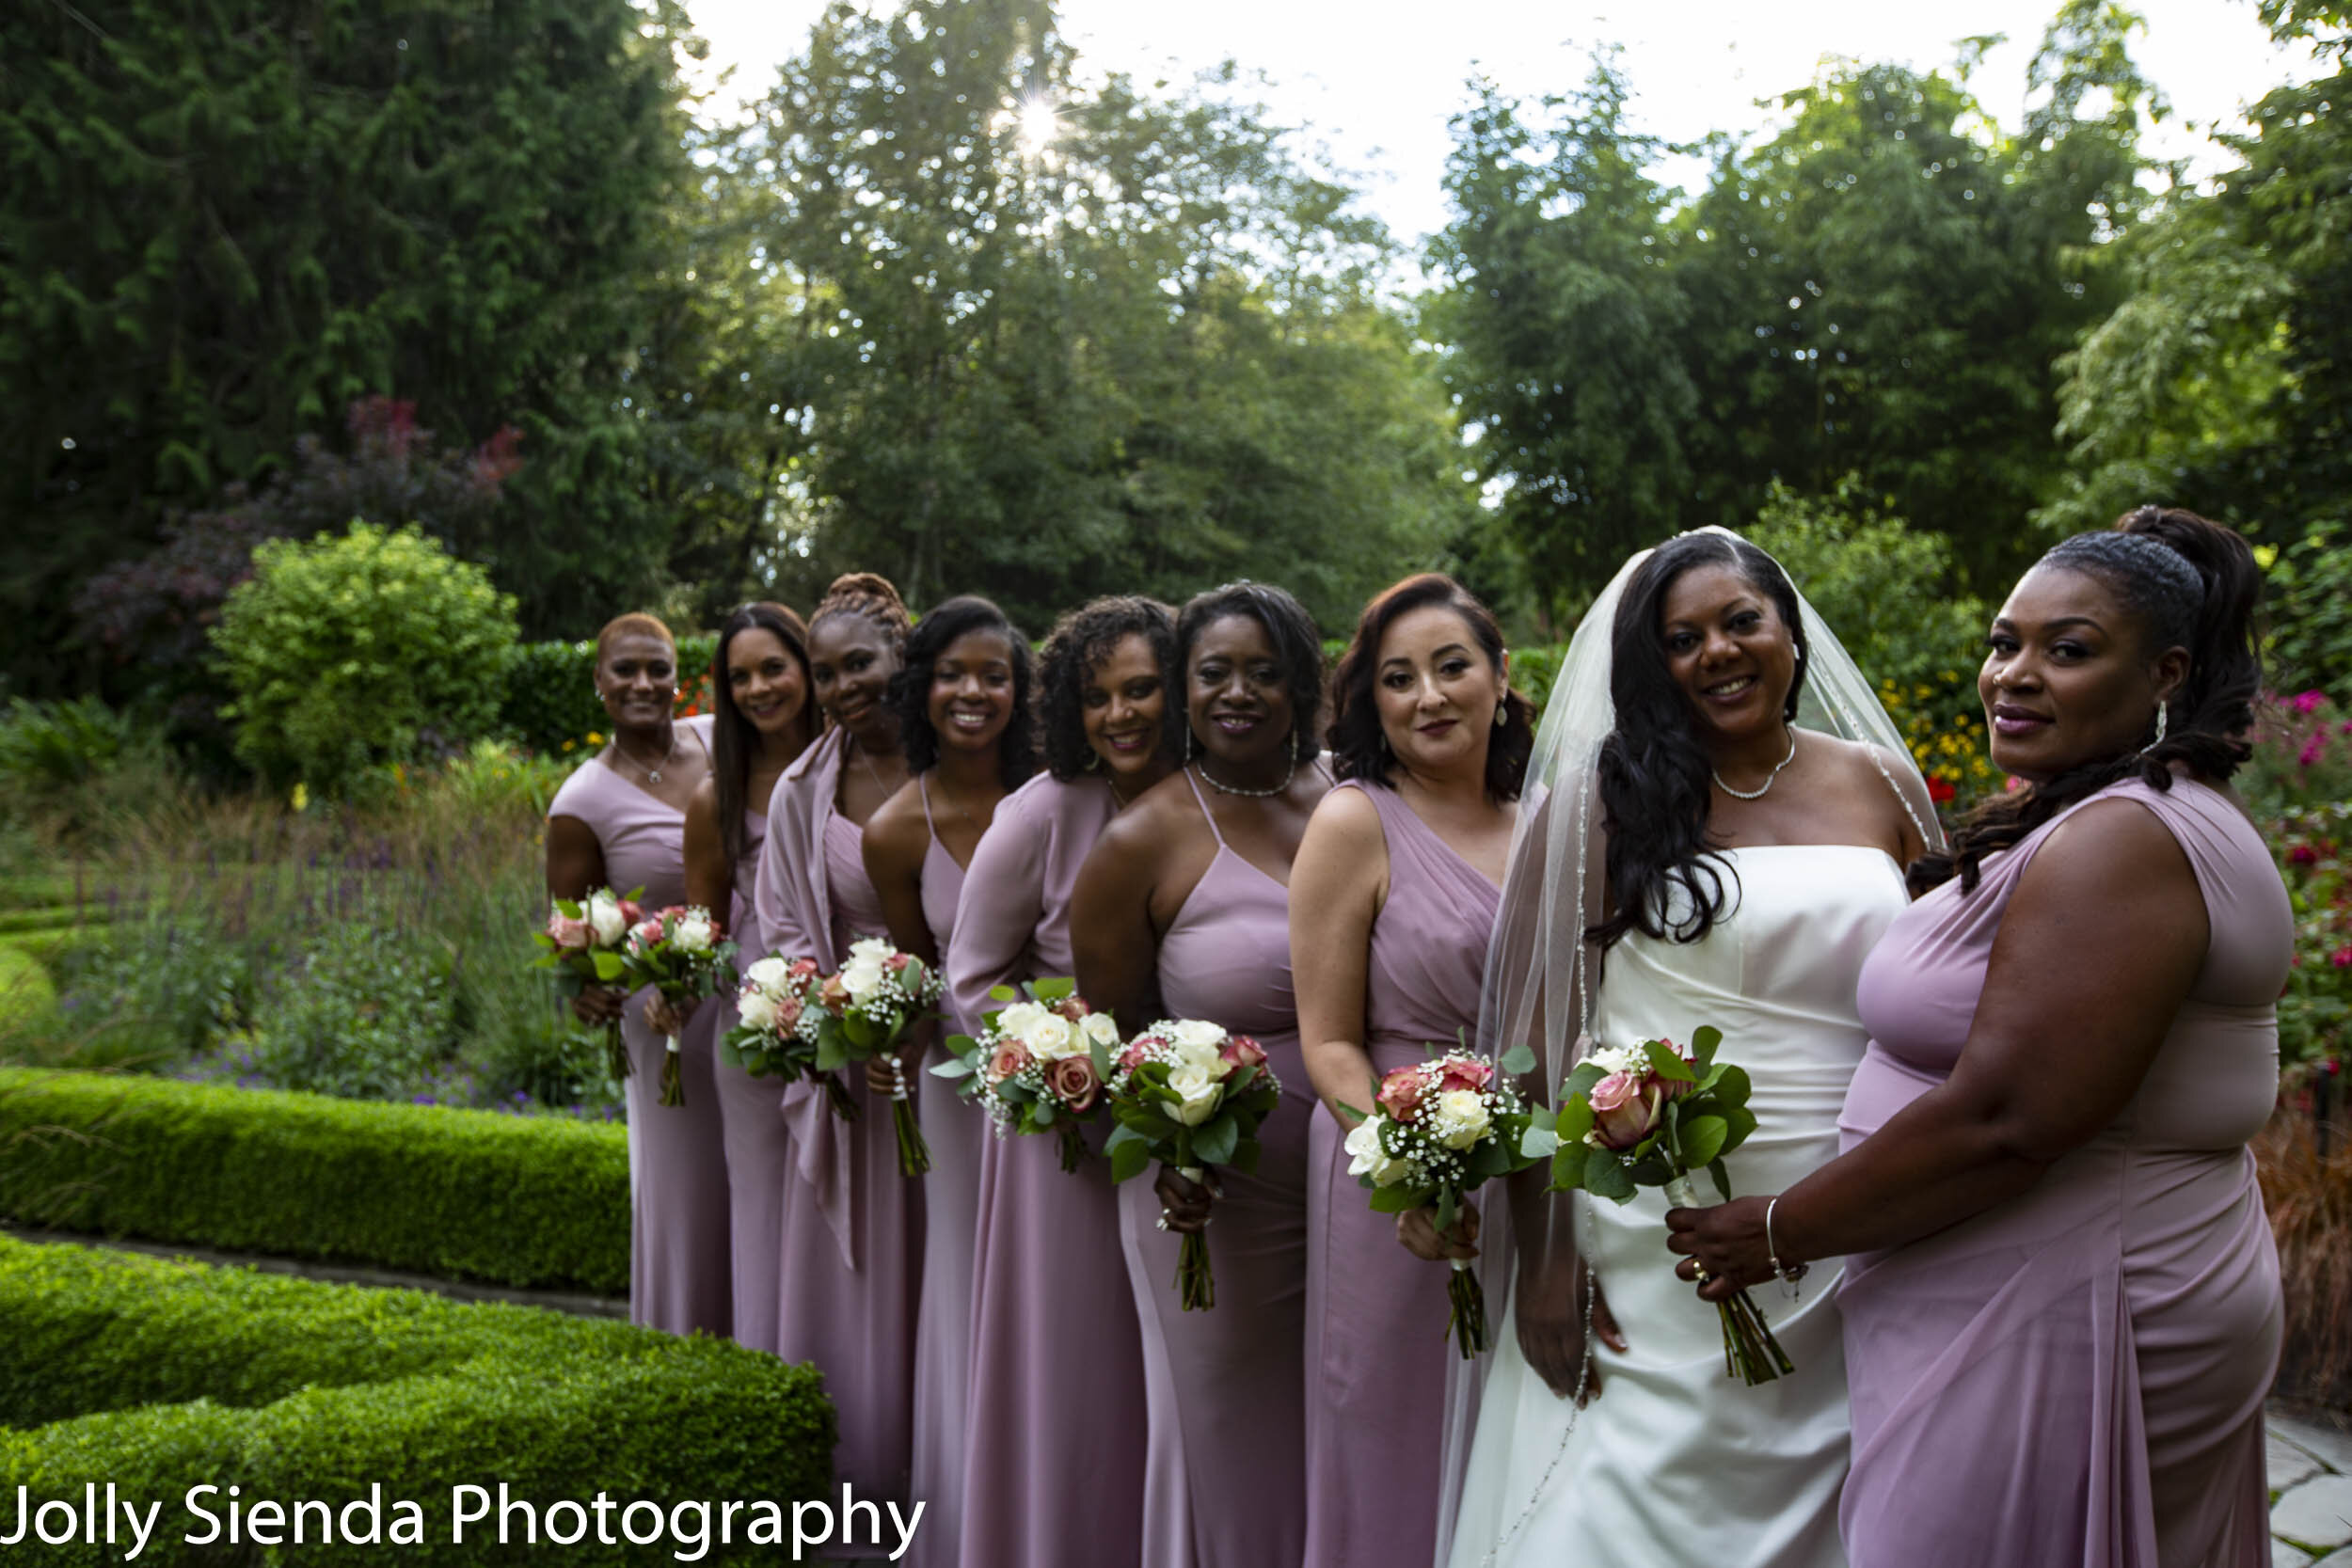 Nioka Butler with her bridesmaids at Heronswood Gardens by Jolly Sienda Photography